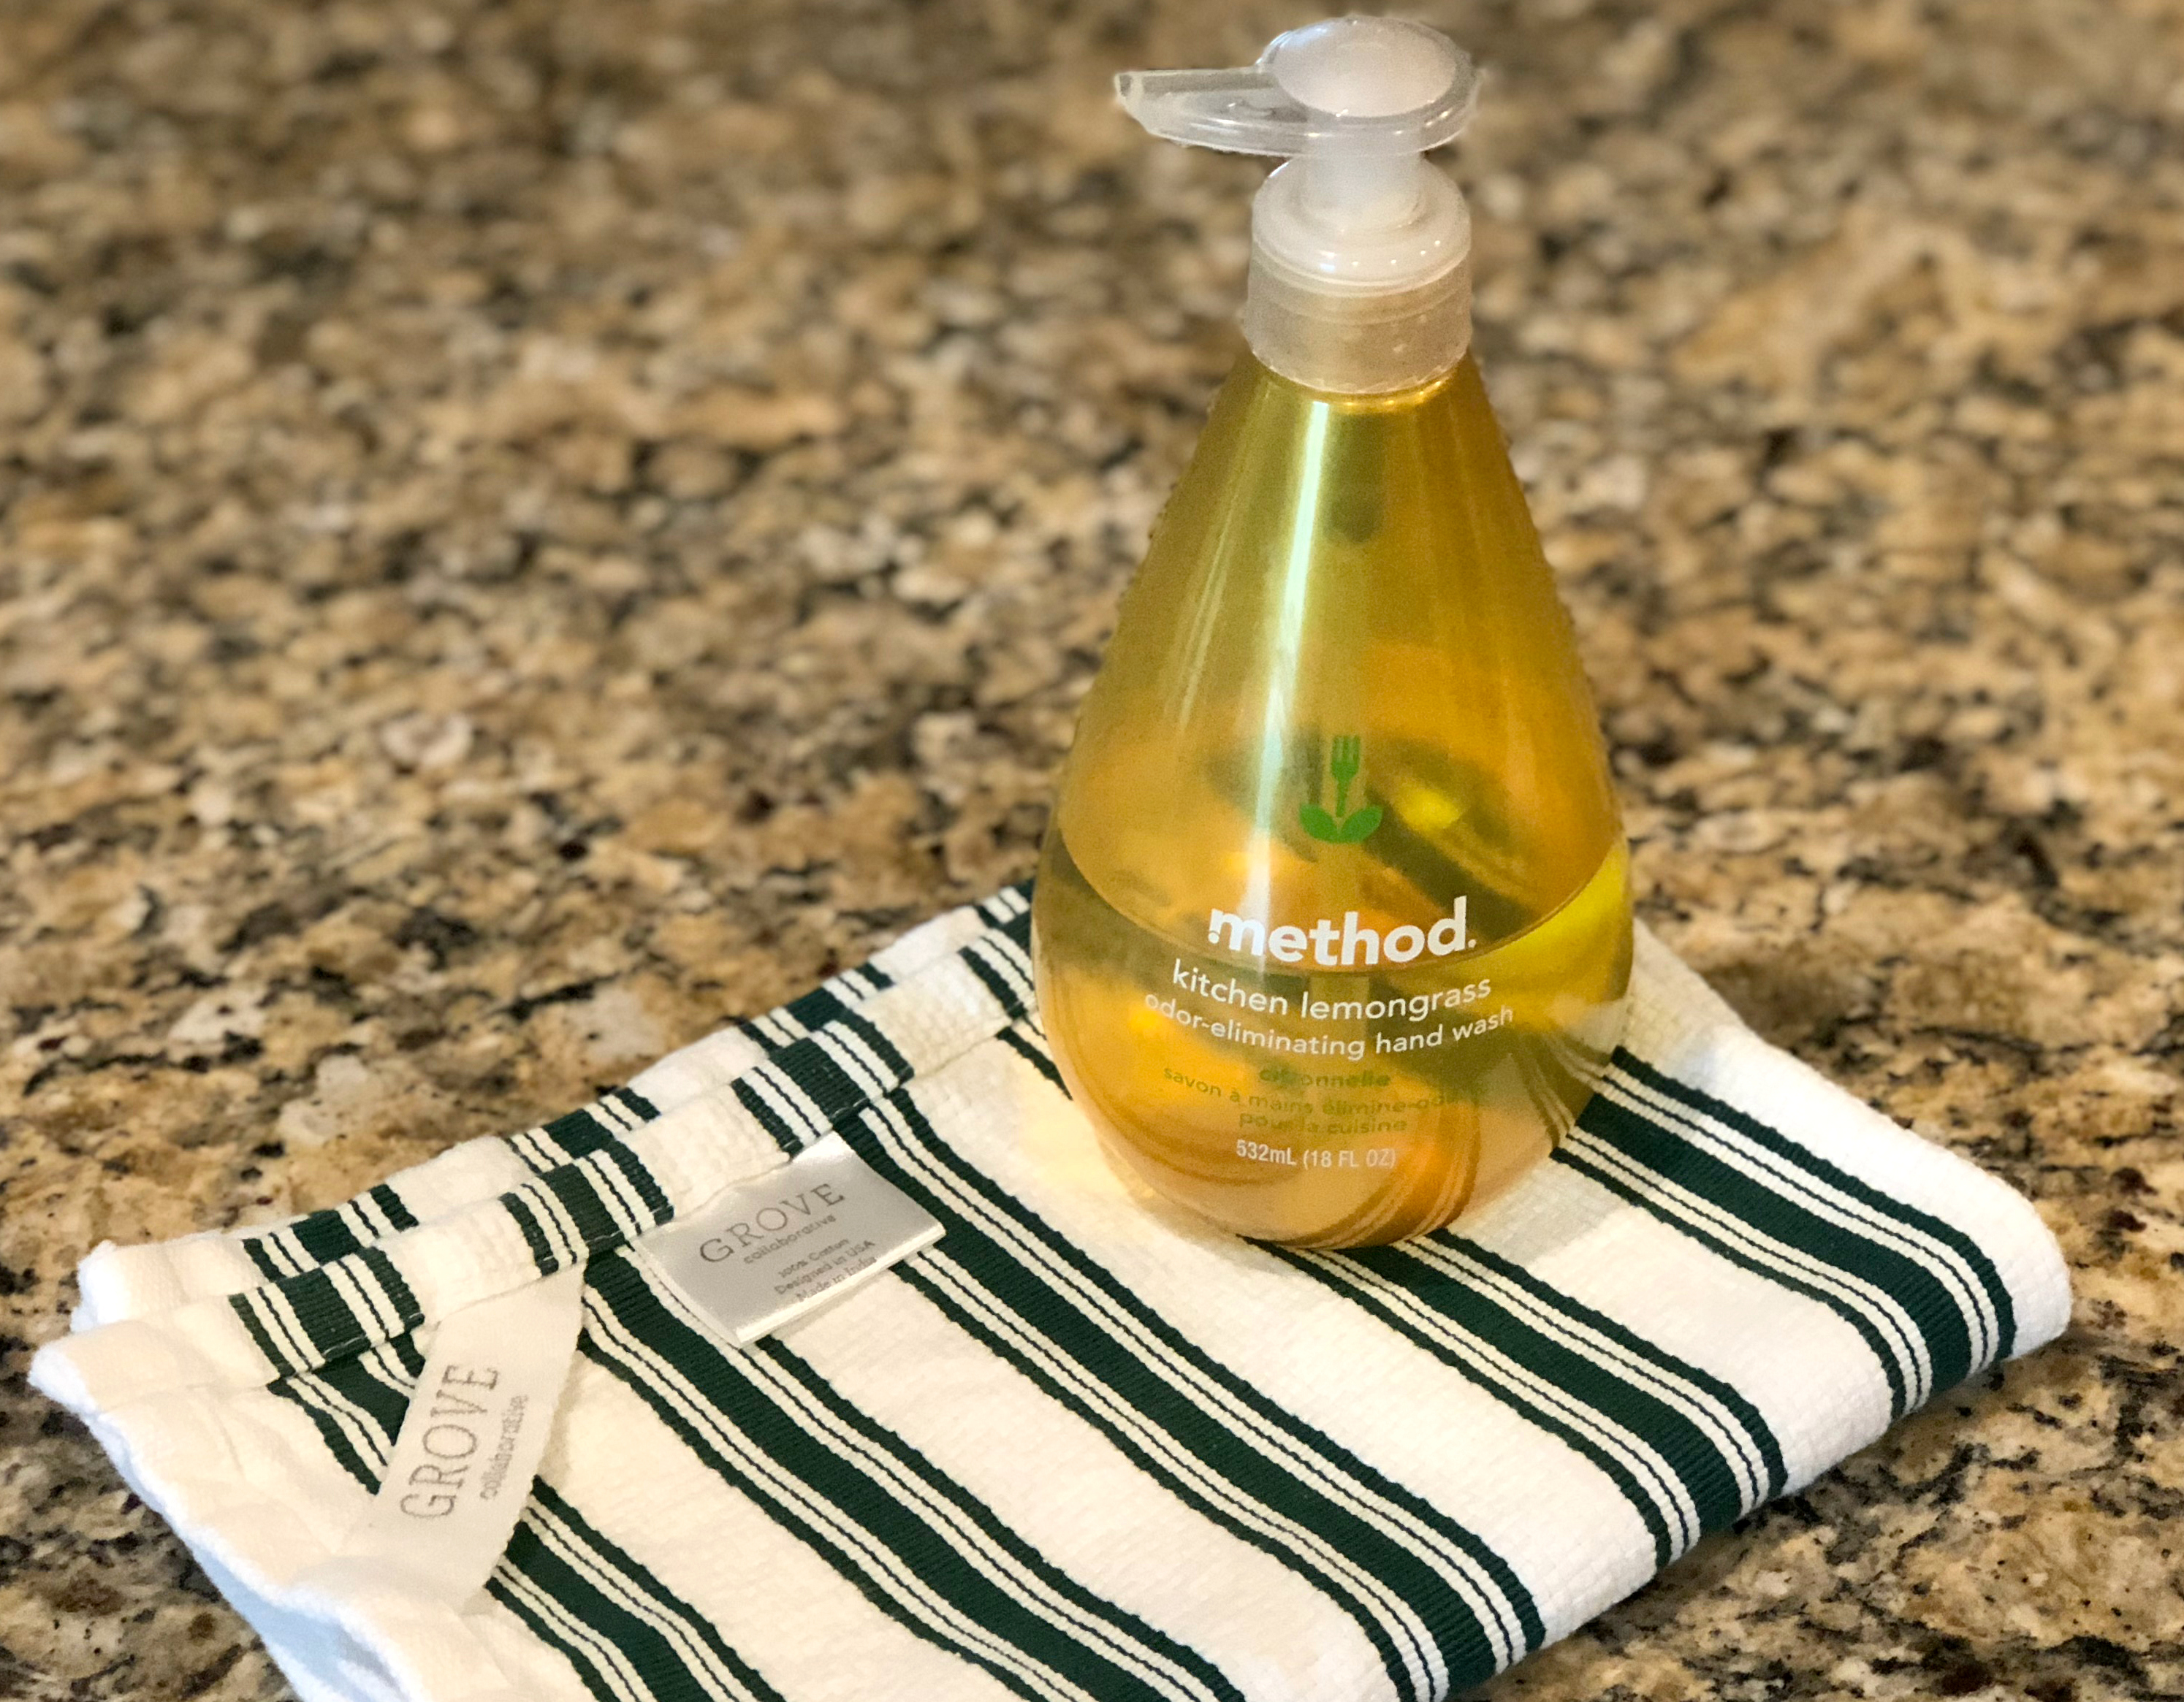 Mrs. Meyer's fall seasonal scents are available at The Grove in free gift sets! Pictured here is hand soap.